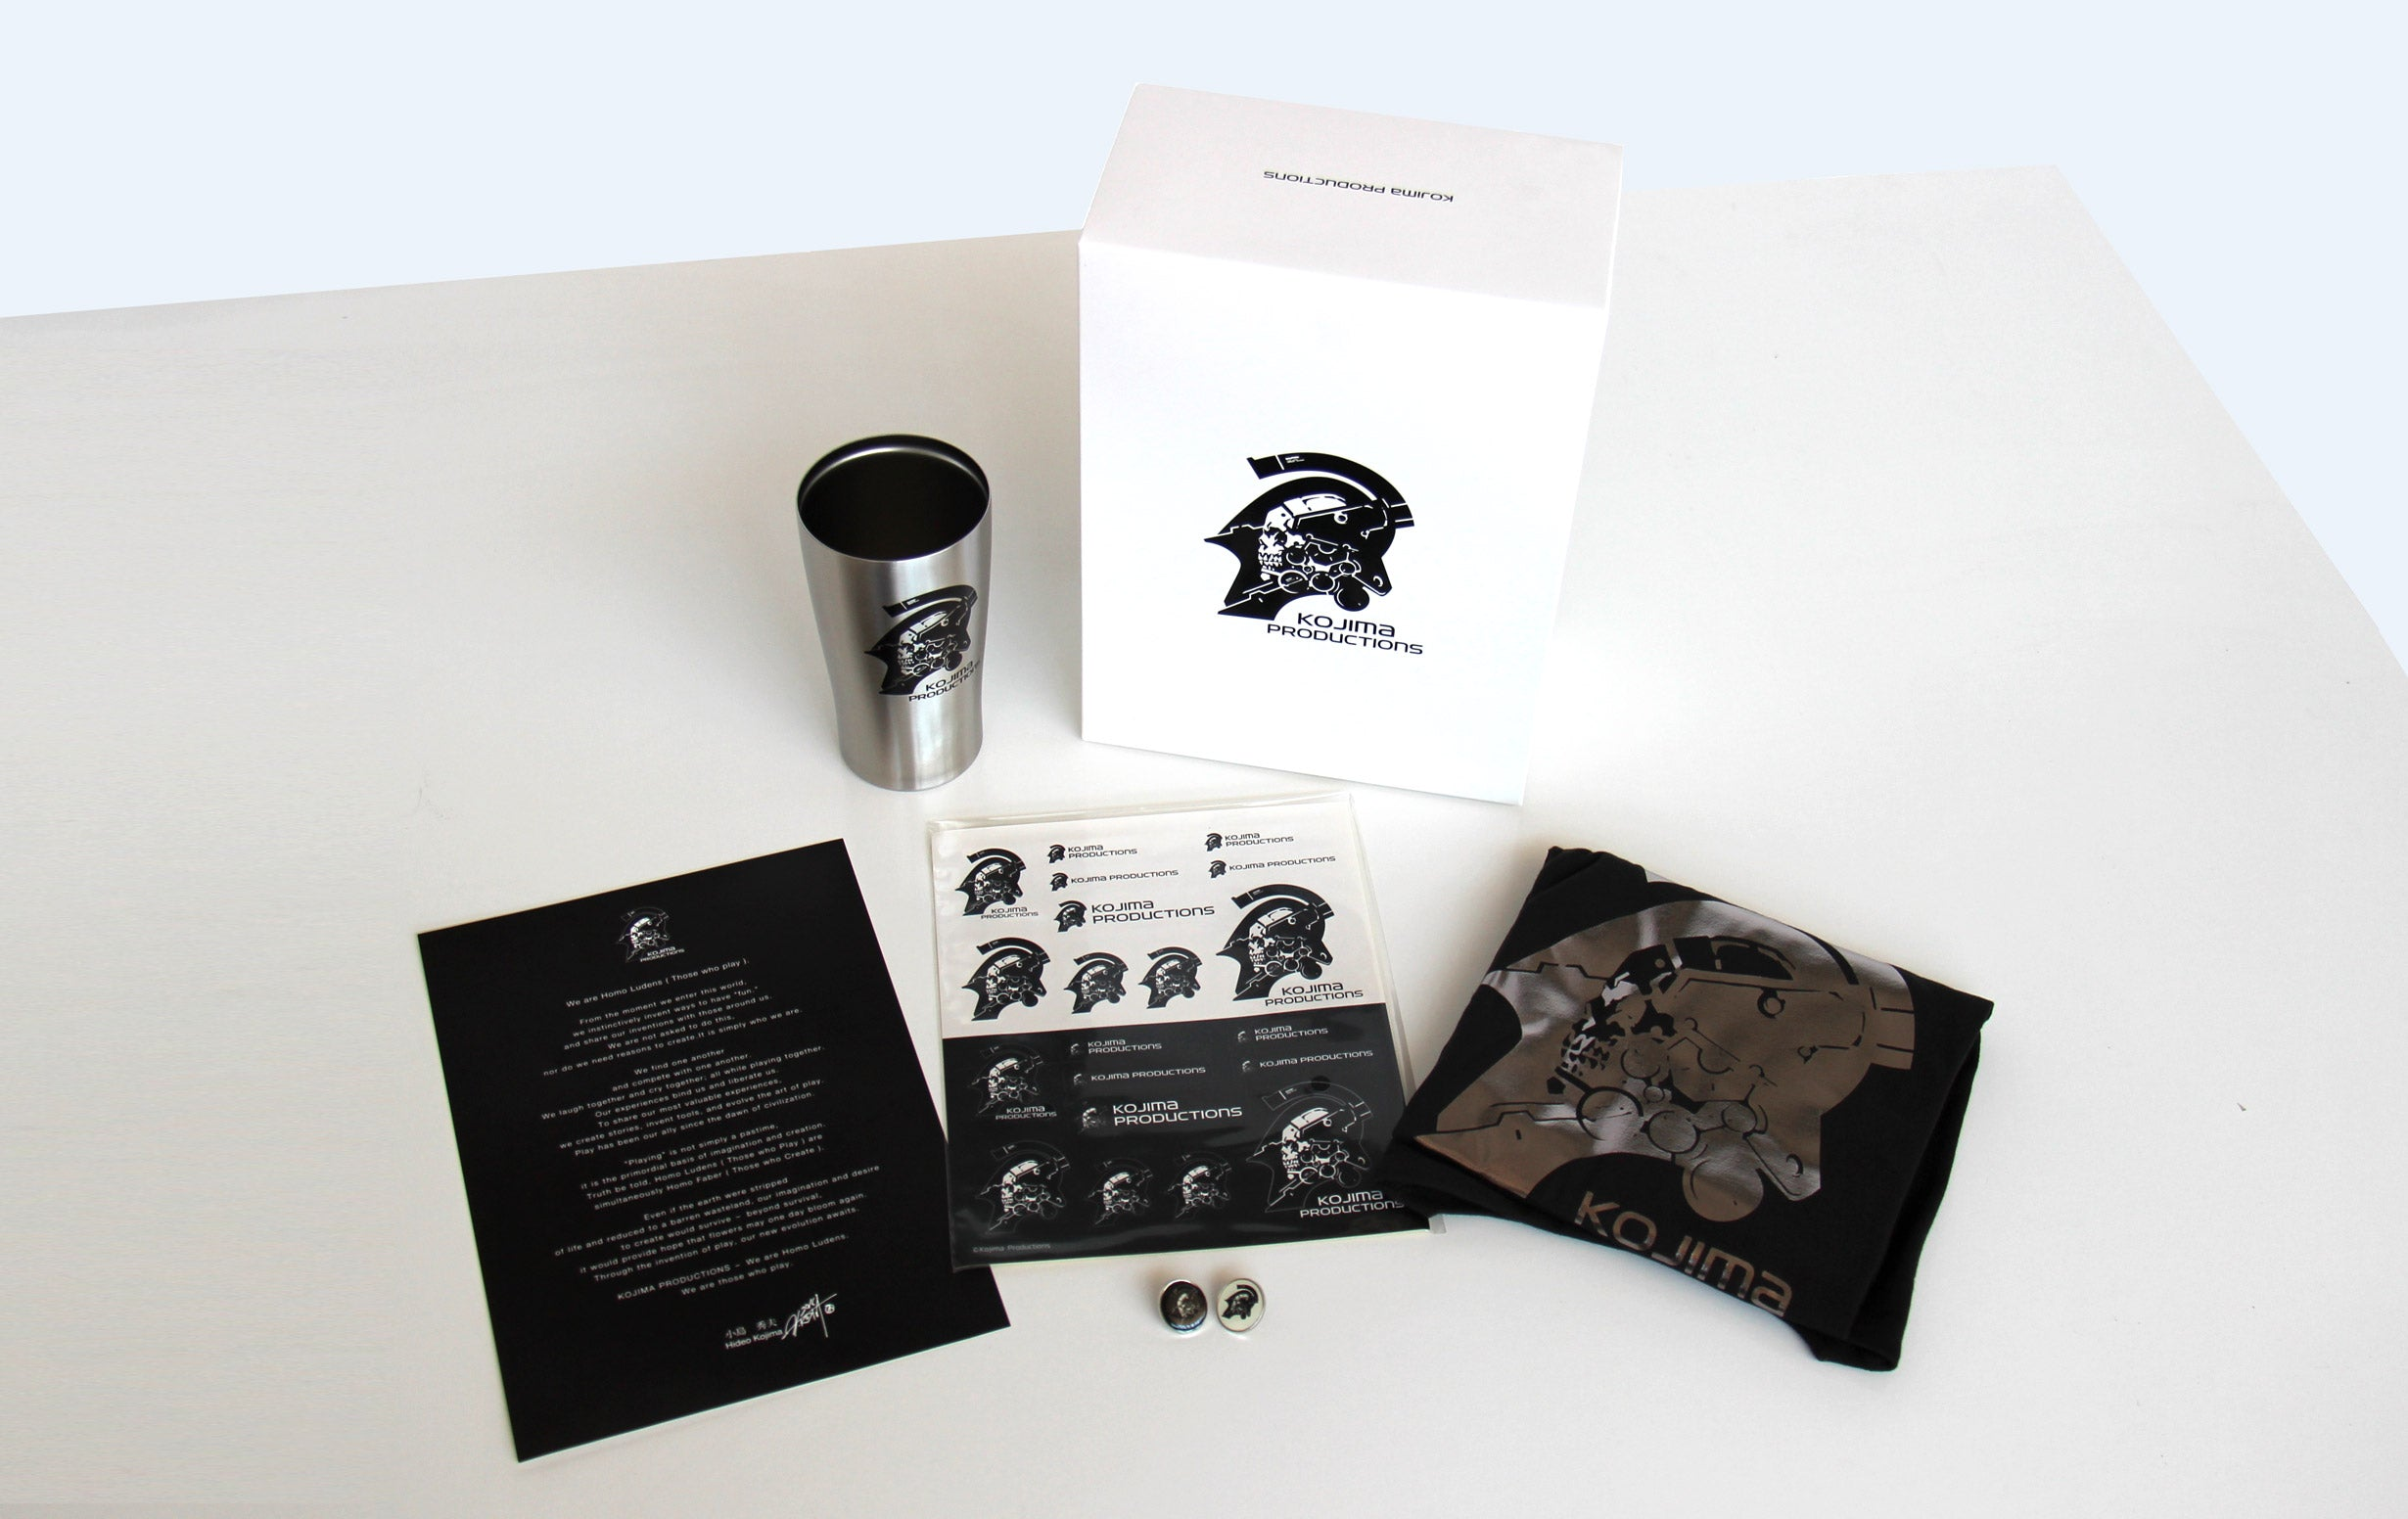 kojima productions store